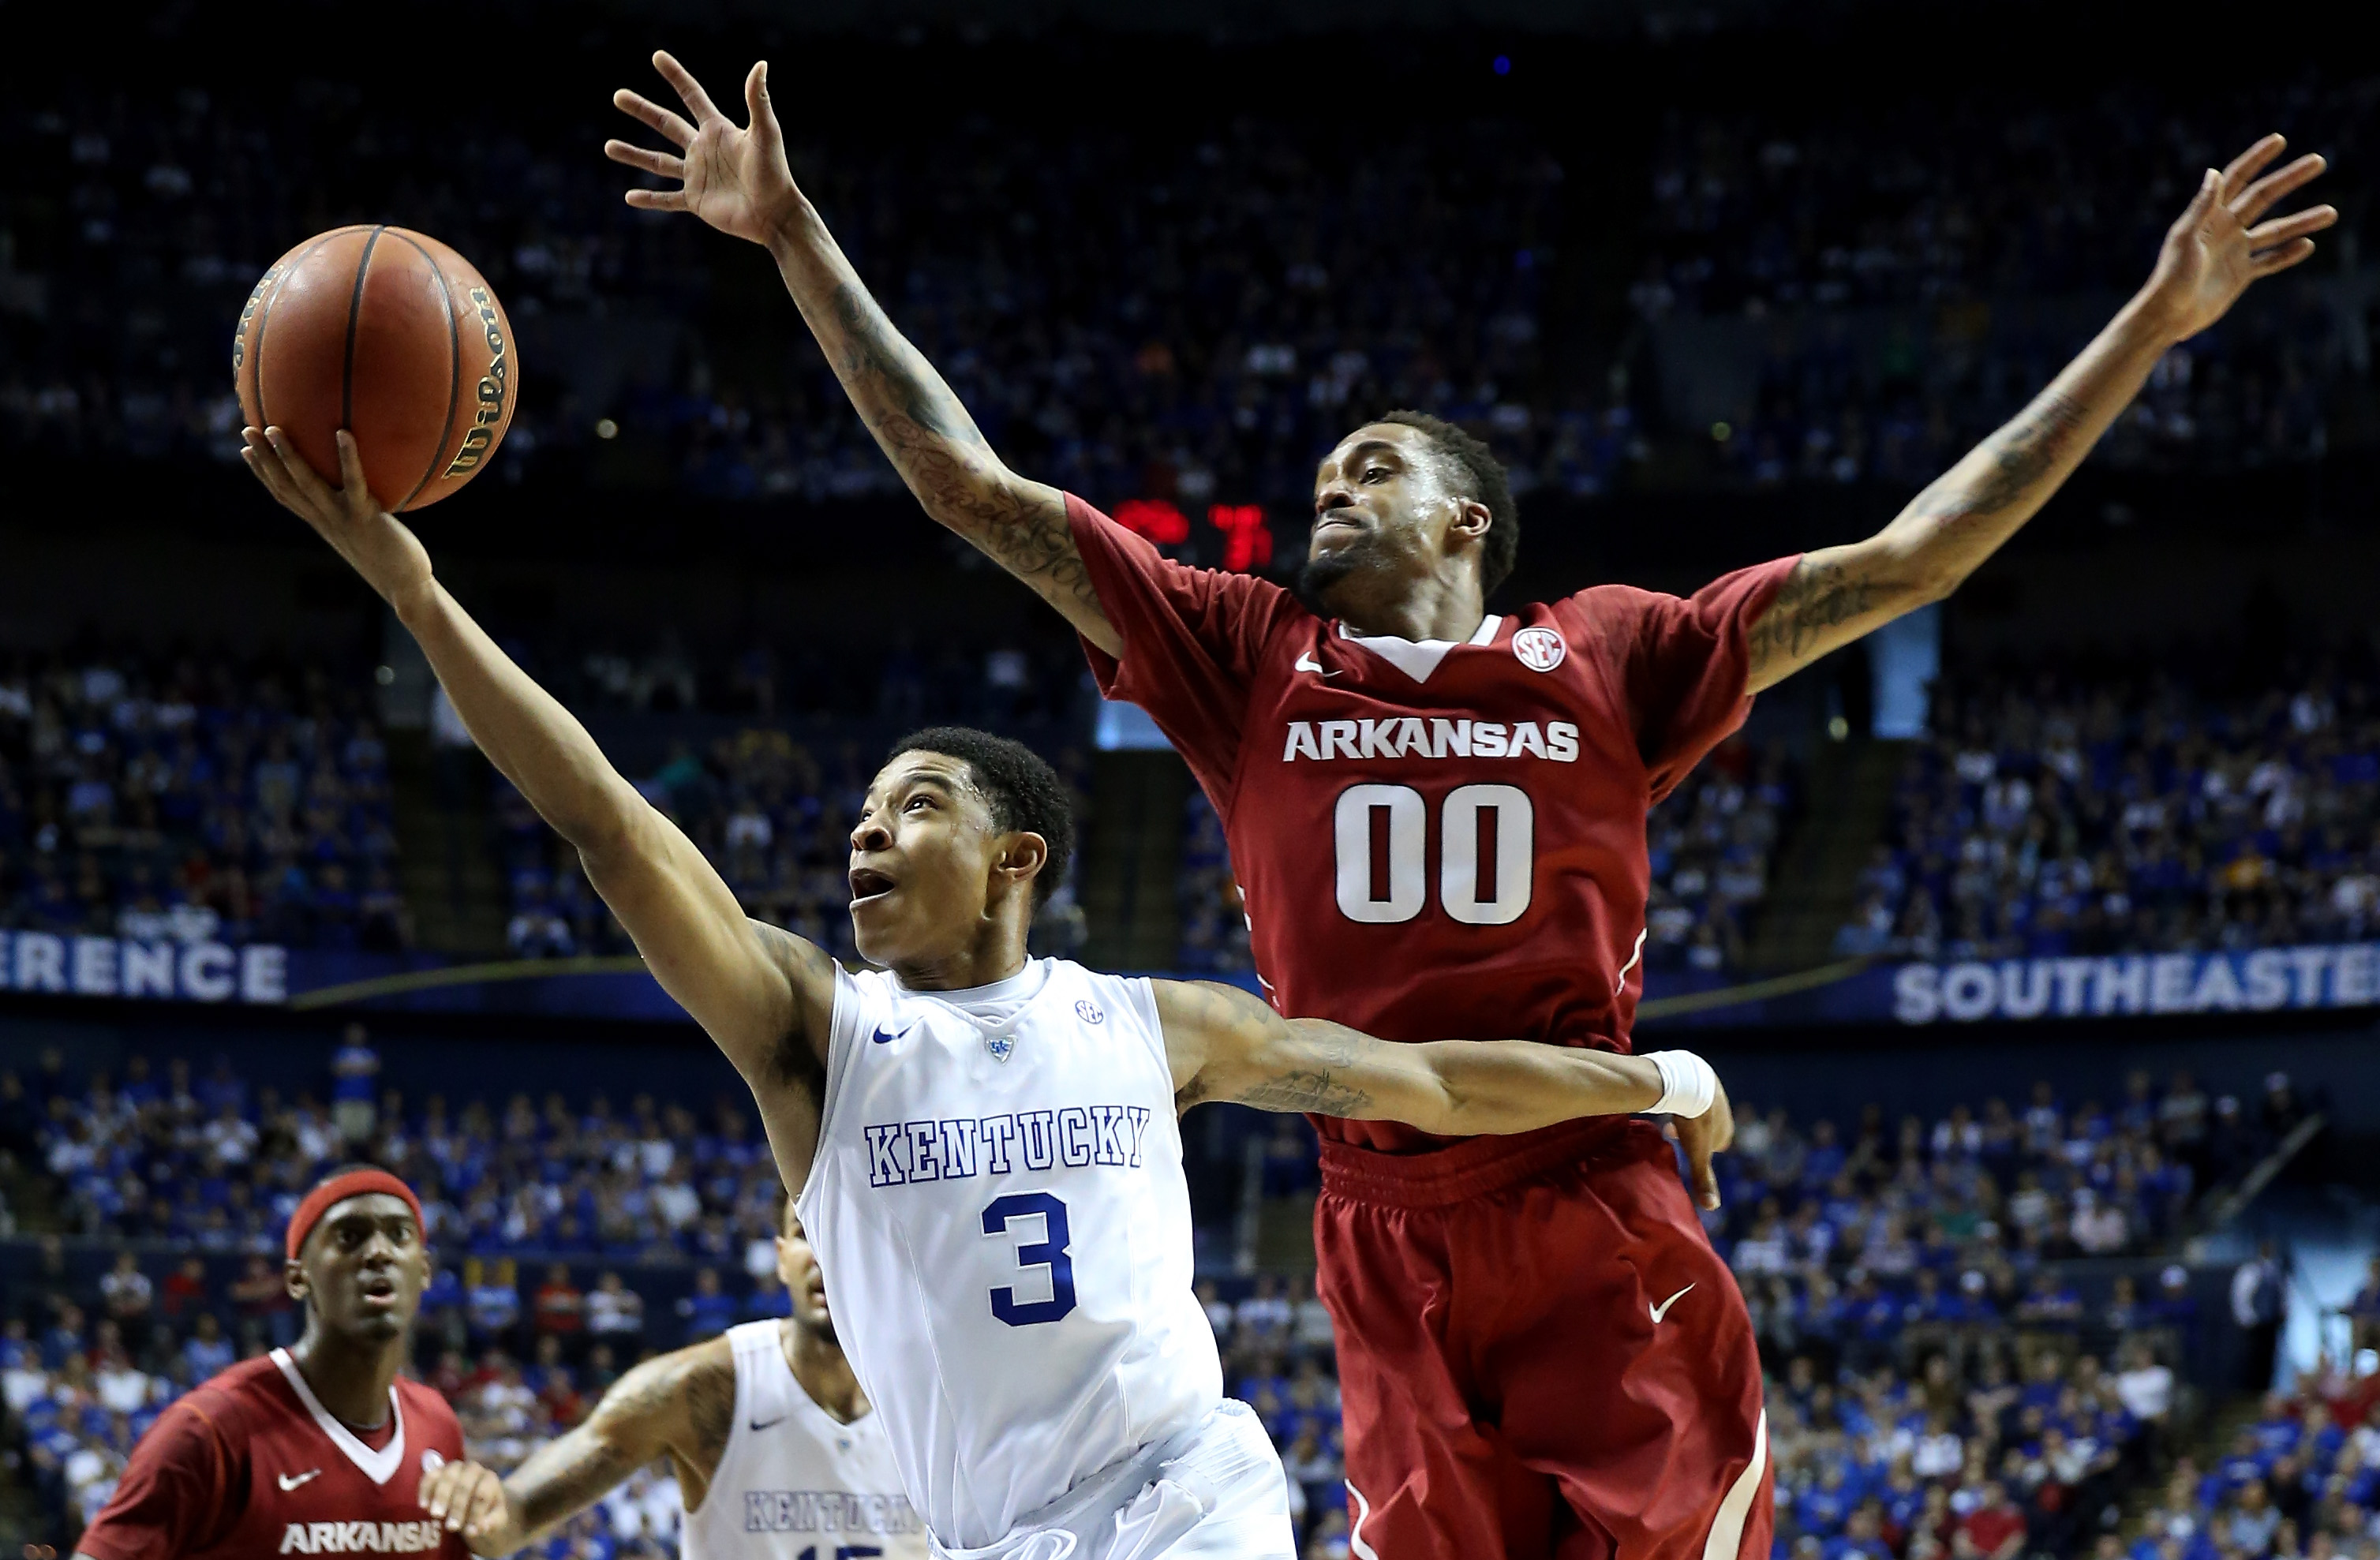 Tyler Ulis #3 of the Kentucky Wildcats goes to the basket as Rashad Madden #00 of the Arkansas Razorbacks defends during the championship game of the SEC basketball tournament at Bridgestone Arena on March 15, 2015 in Nashville, Tennessee.